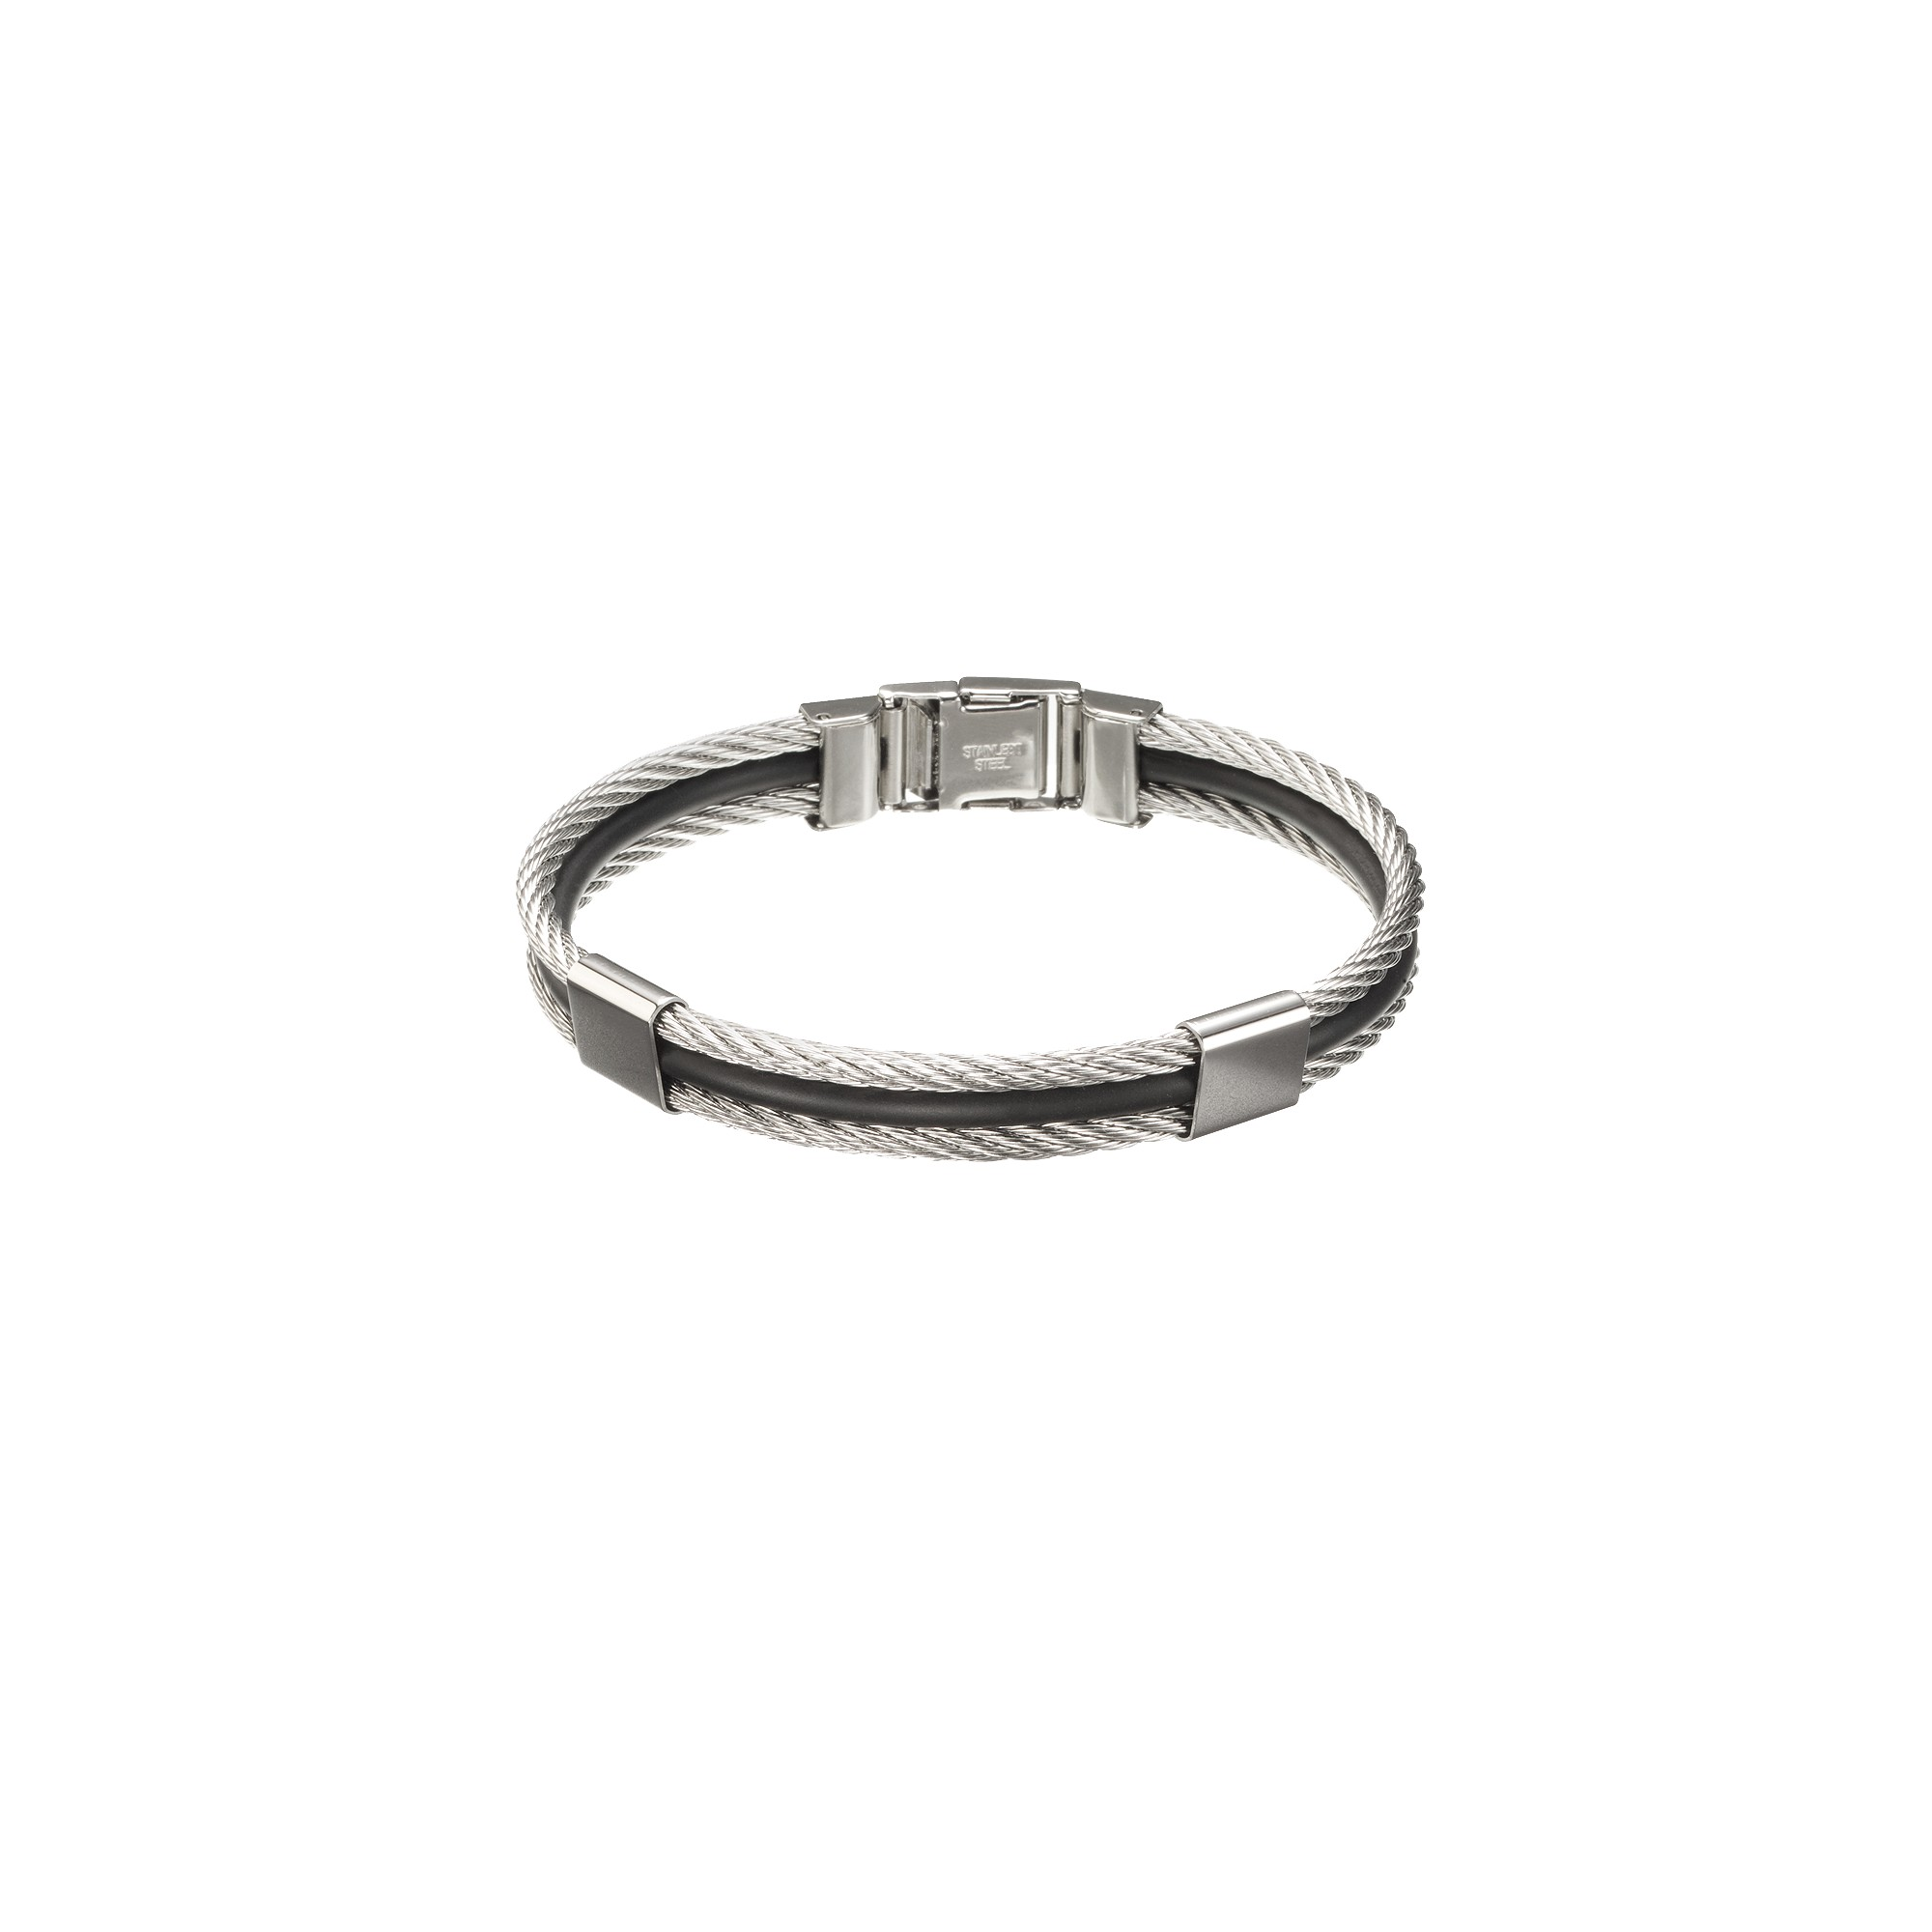 Men's Stainless Steel and Rubber Bangle Bracelet, Size: Small, Silver/Silver